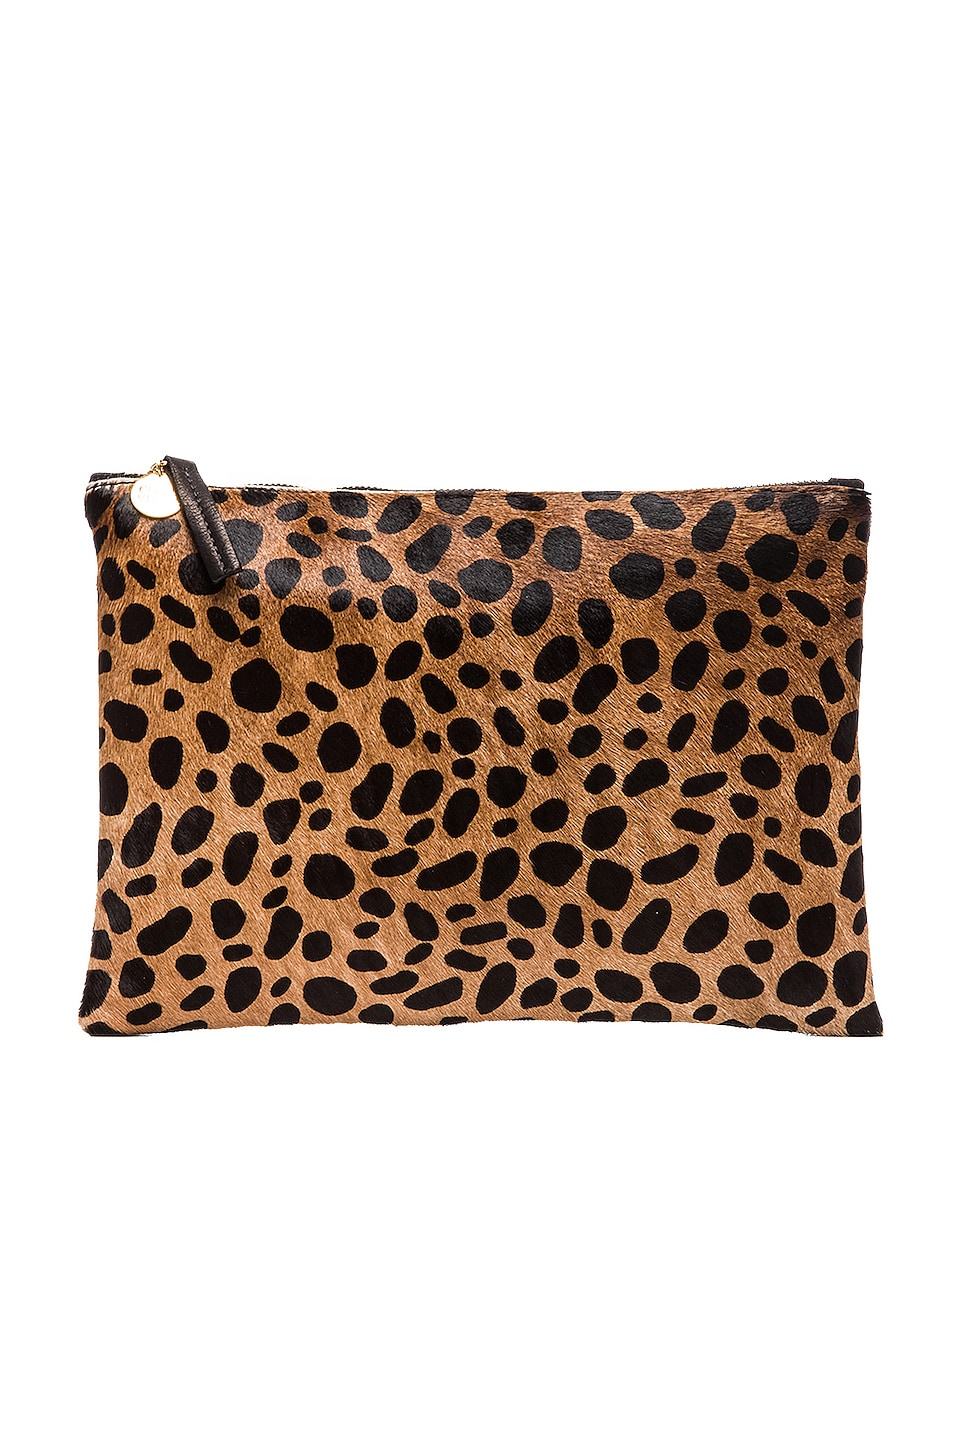 Clare V. Flat Calf Hair Clutch in Leopard